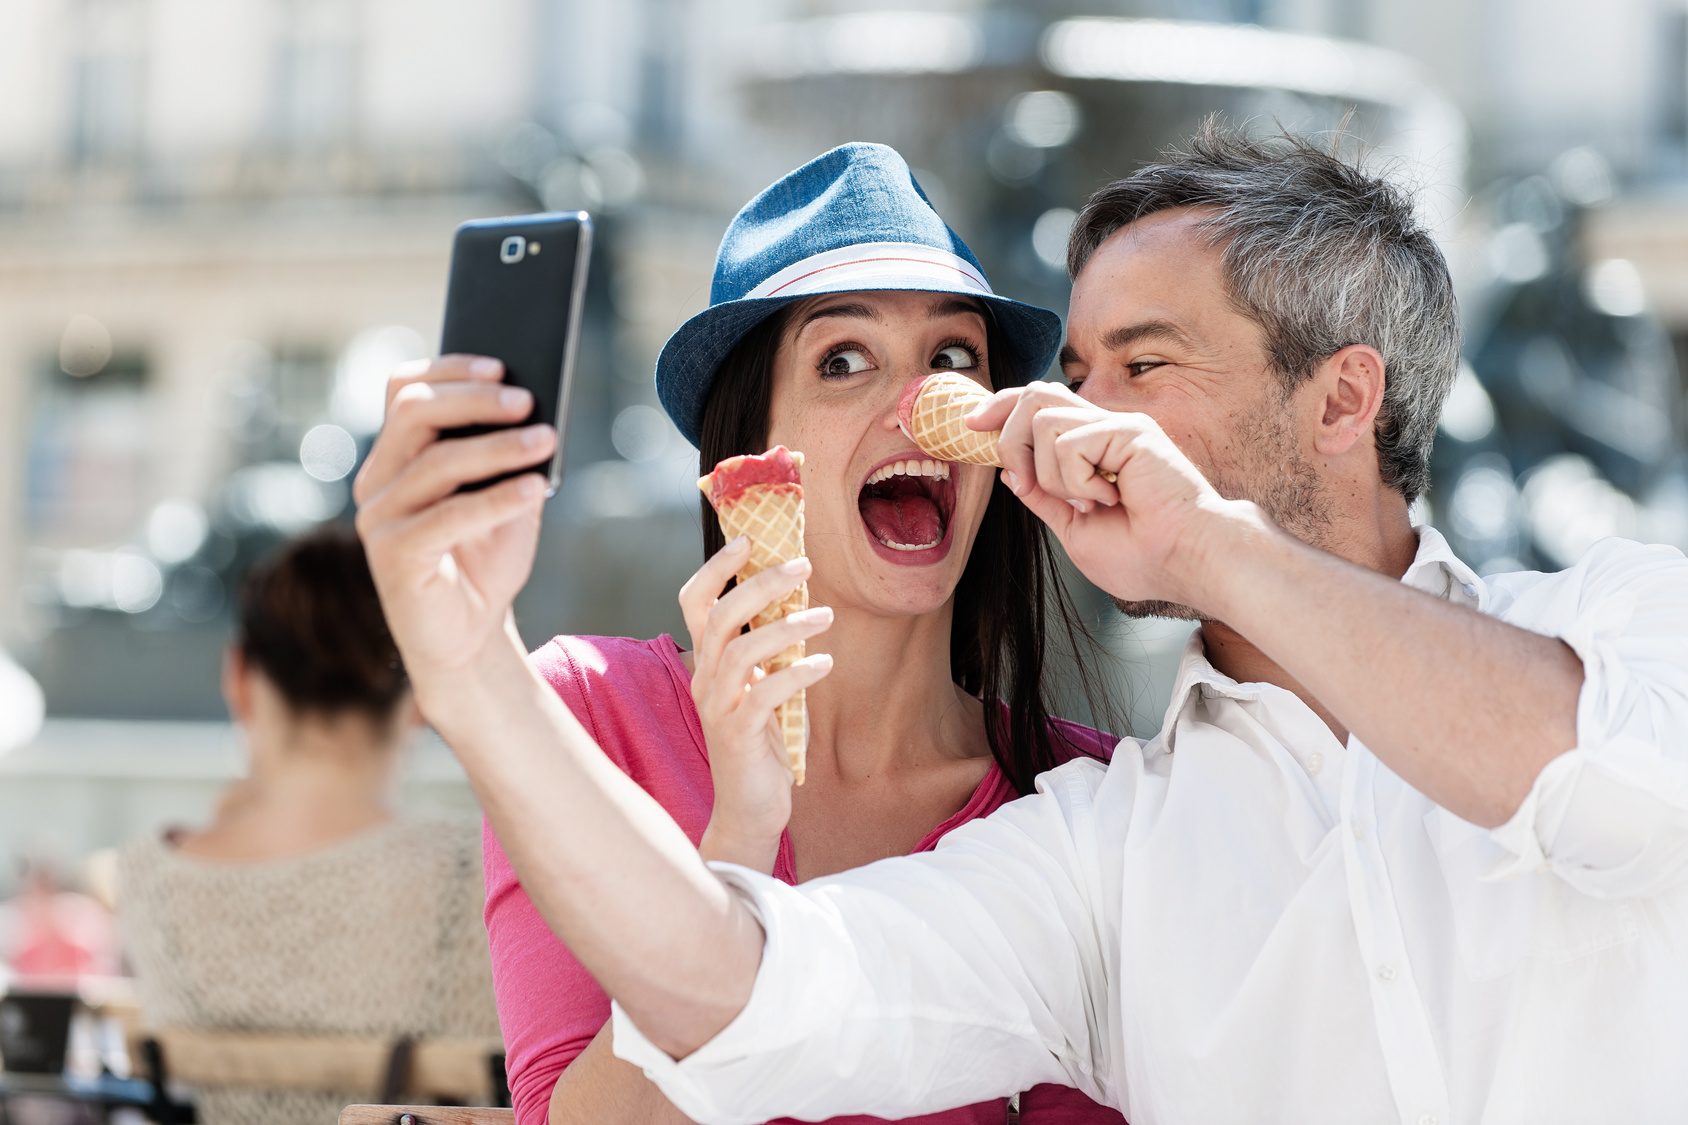 Portrait of a smiling couple eating ice cream and having fun in the city. The grey hair man with a beard in a white shirt is taking a picture with phone. The woman is wearing a blue hat and a pink top. They are making faces with their ice cream.